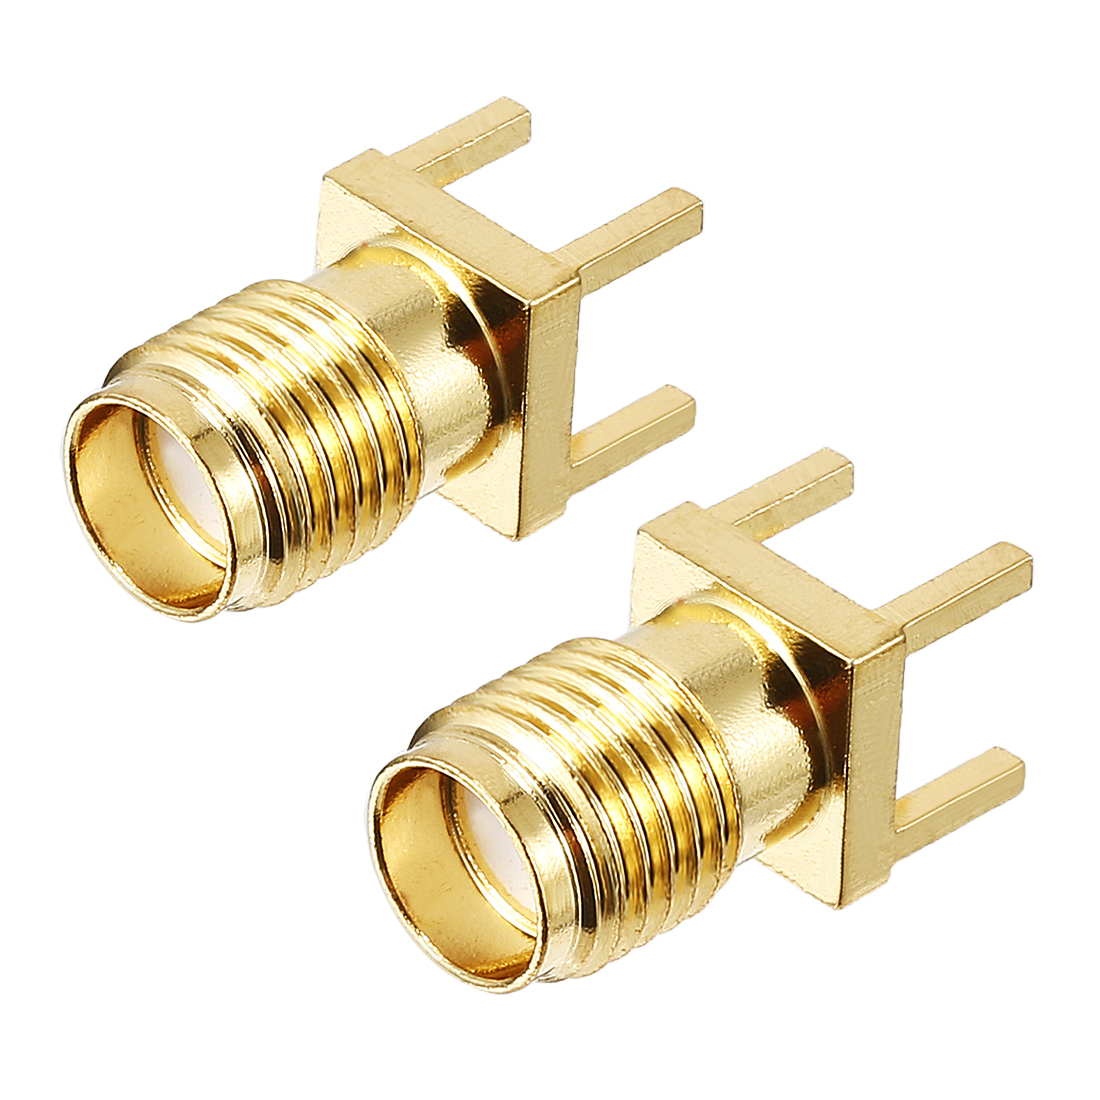 2pcs Gold Tone SMA Female to PCB Positive Pin Jack RF Coaxial Adapter Connector